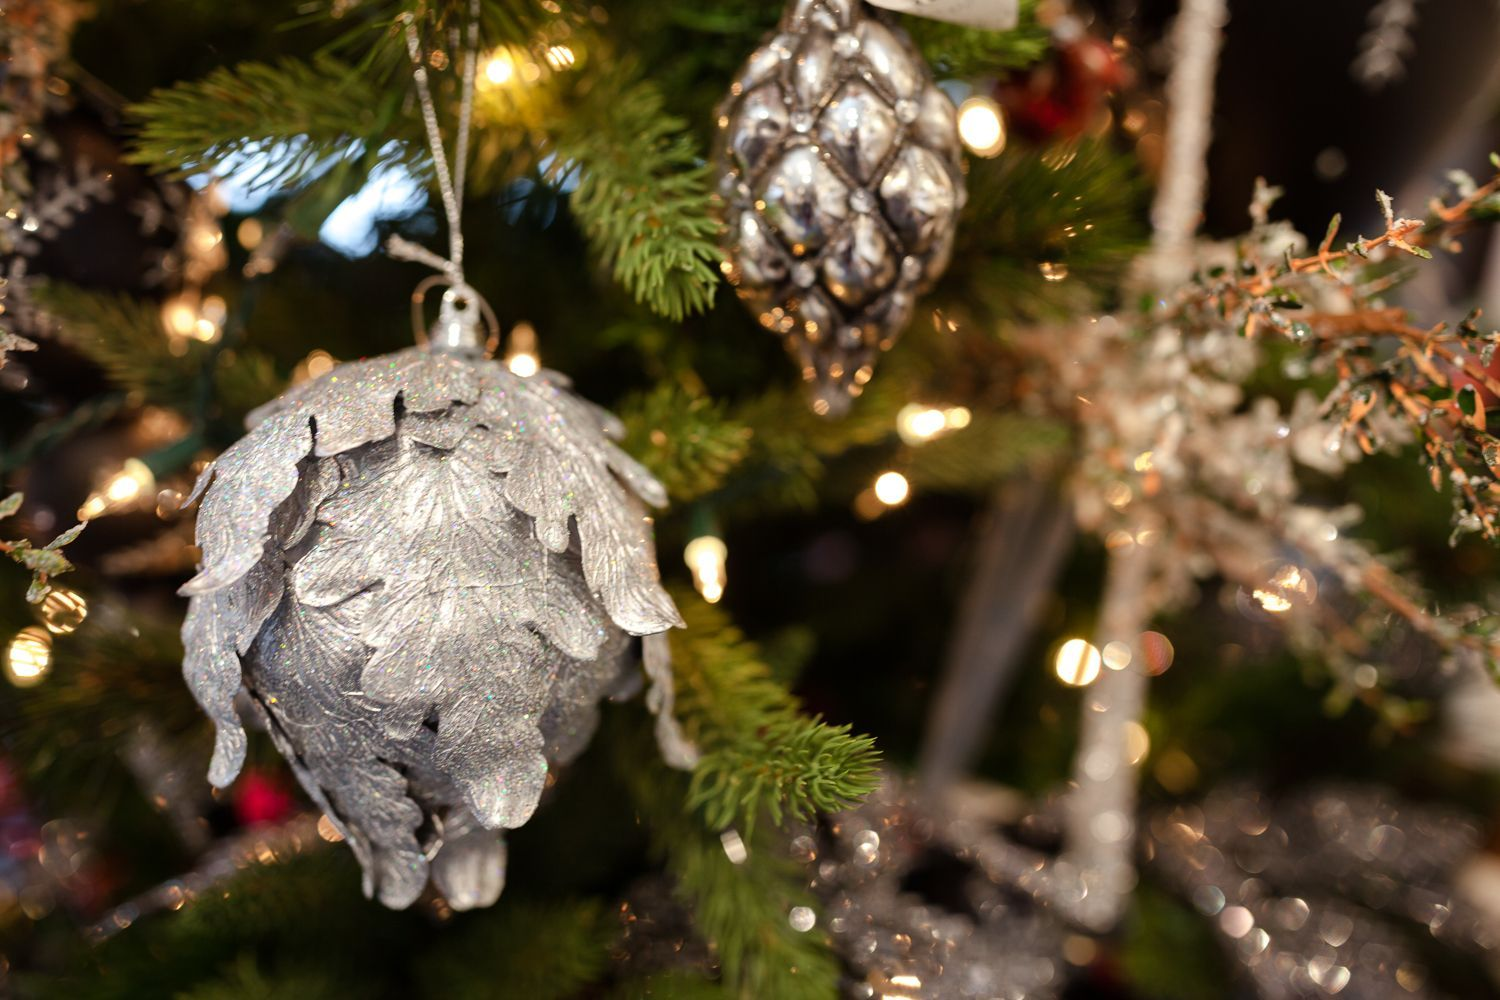 Christmas Clearance Starts Now Our Stores Are Up To 50 Off On All Christmas Decor And More Come Christmas Tree Decorations Christmas Decorations Home Decor